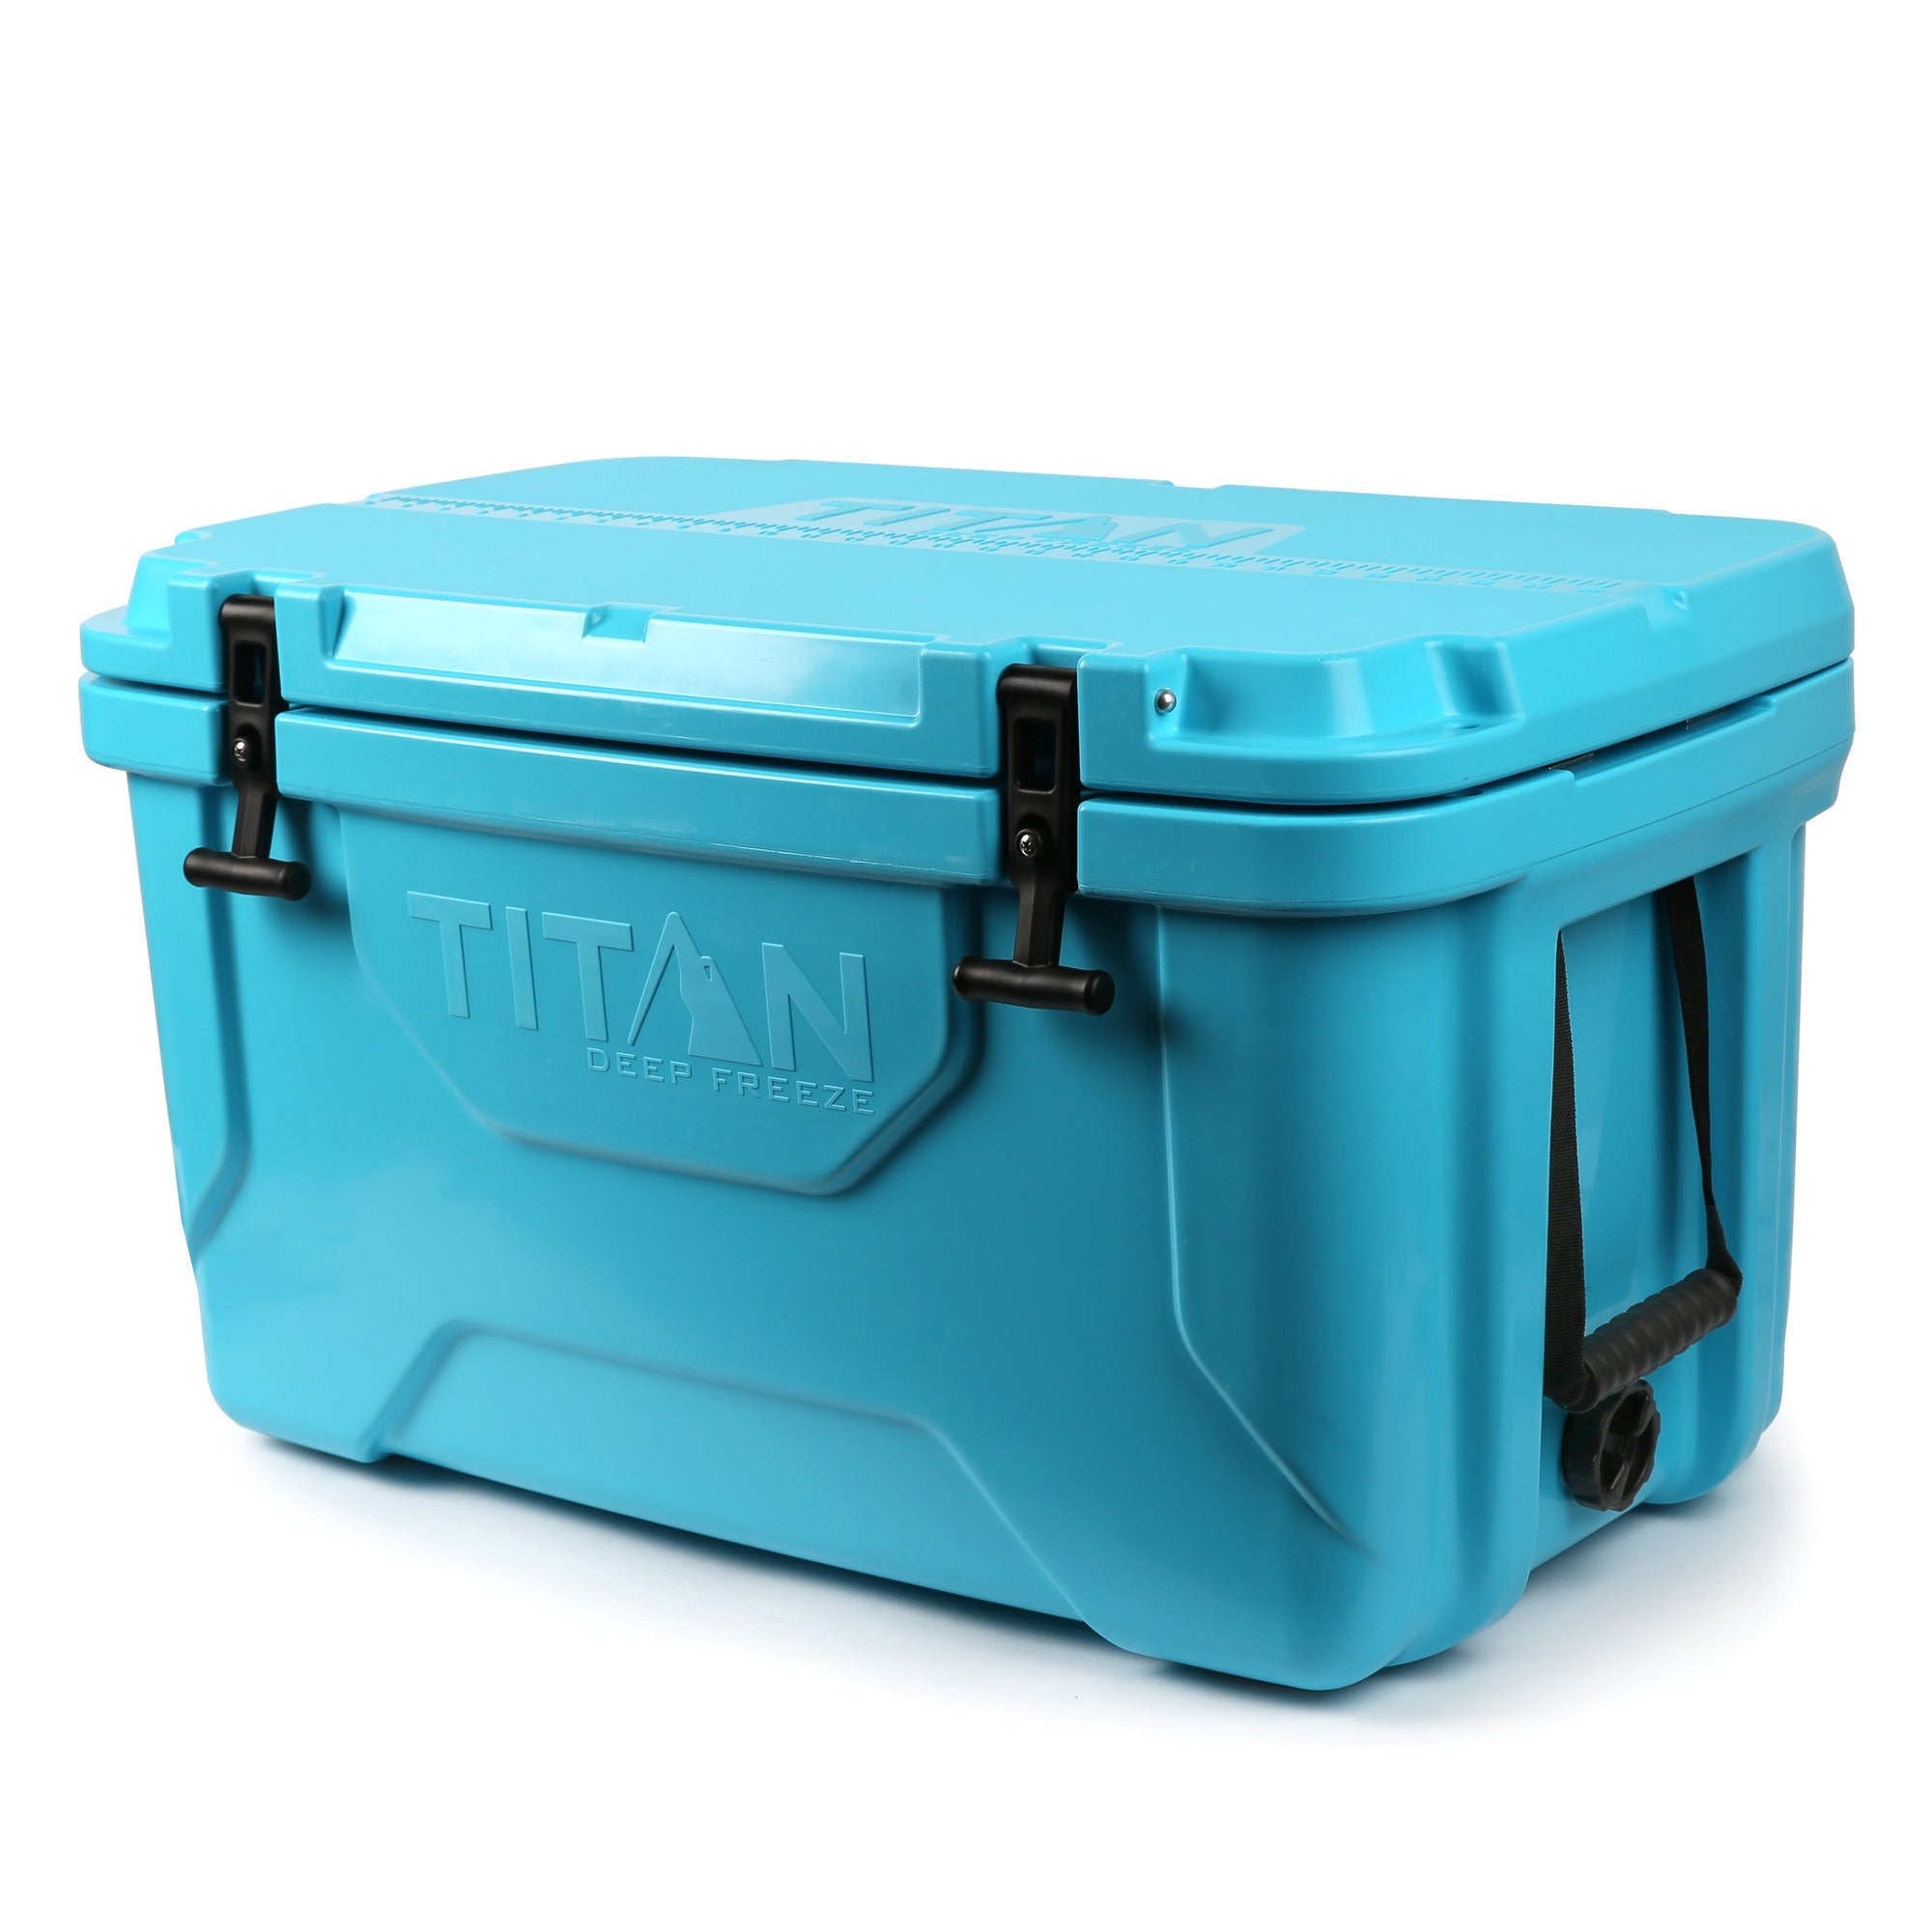 Titan Deep Freeze® 55Q High Performance Cooler - front - with microban